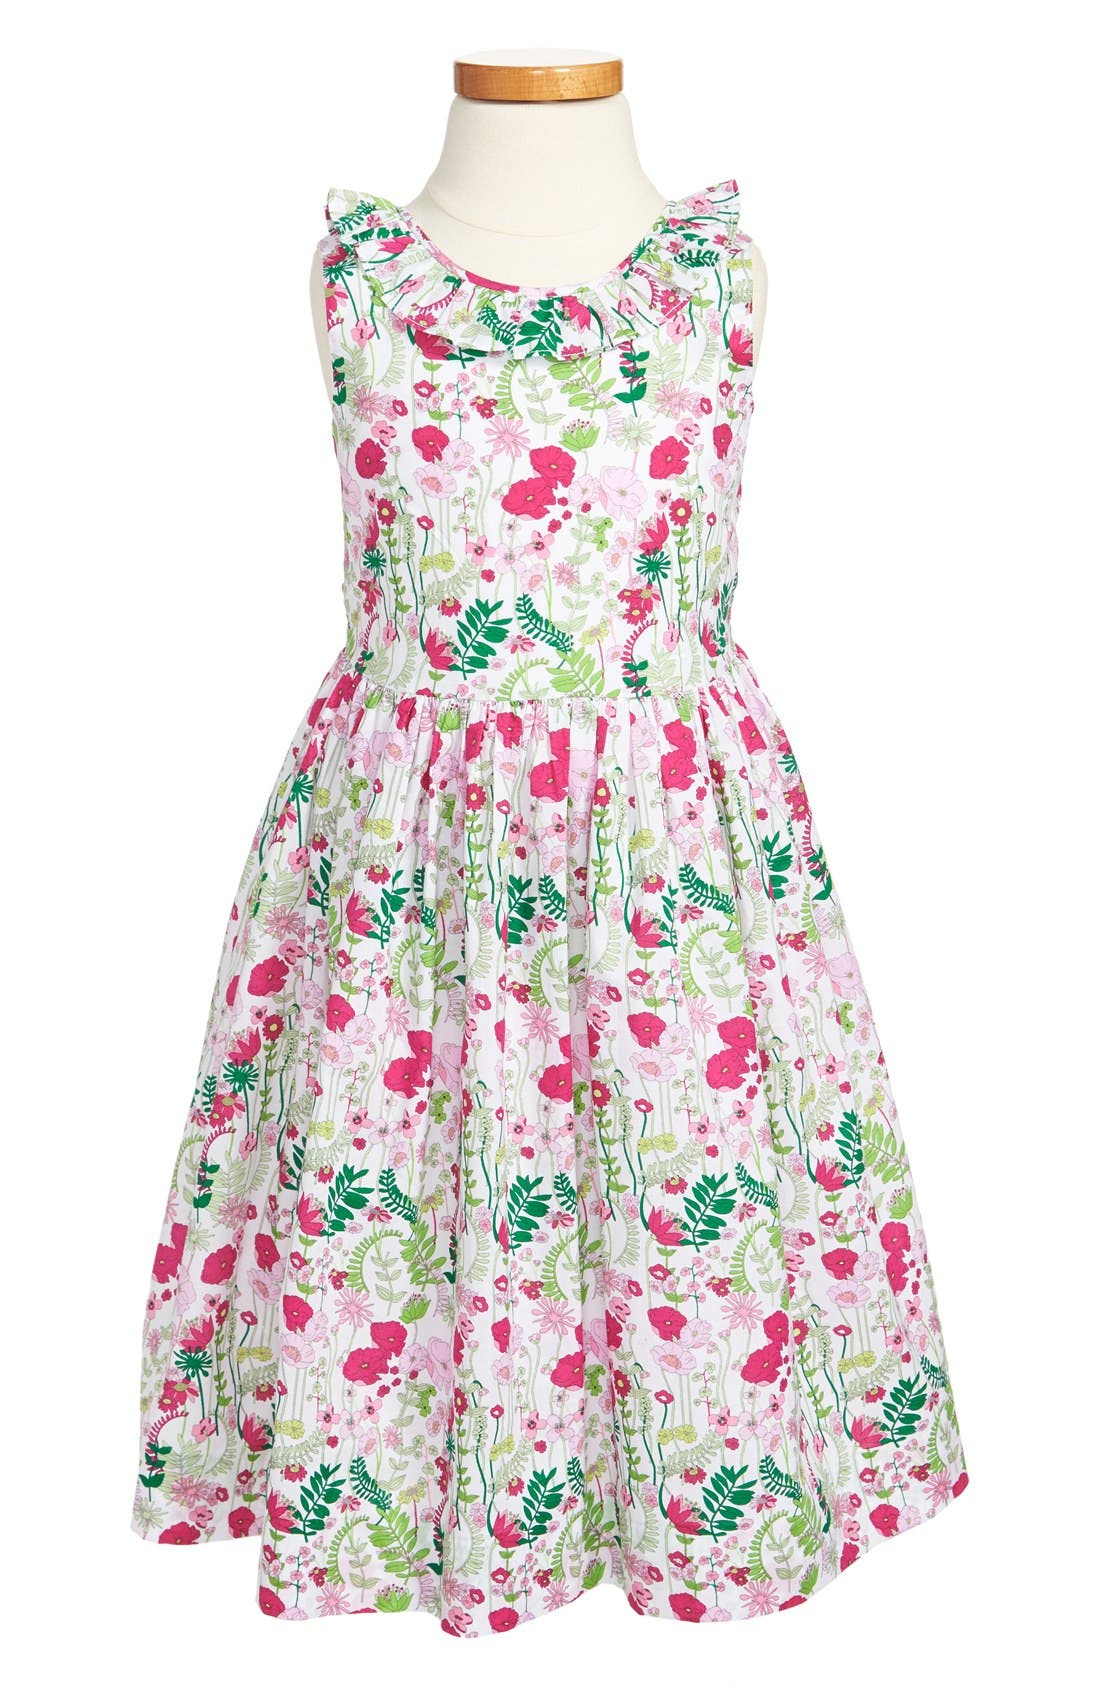 Alternate Image 1 Selected - Oscar de la Renta Ruffle Collar Dress (Little Girls & Big Girls)